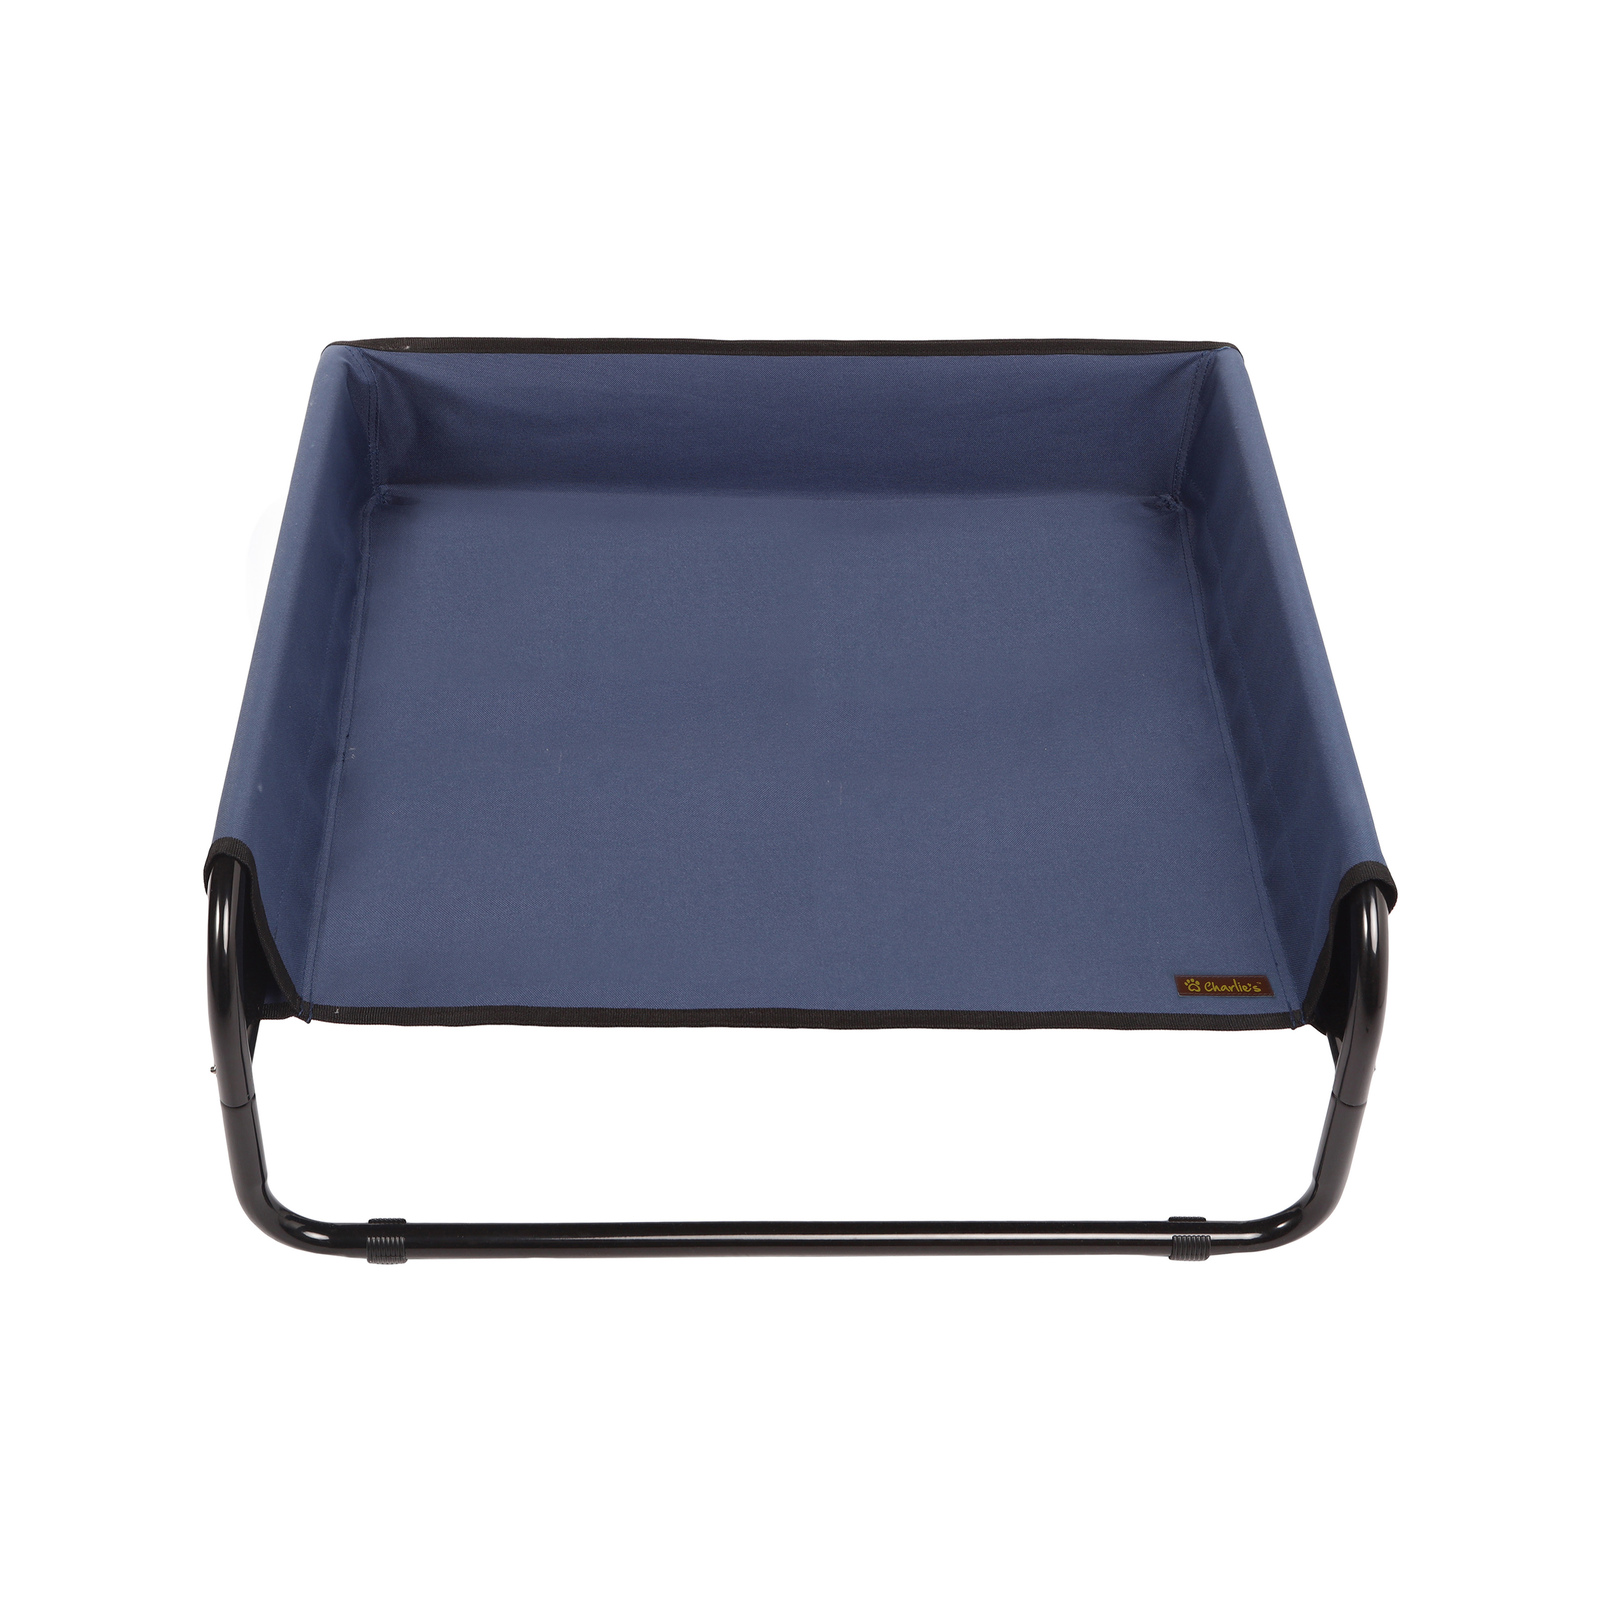 Charlie's Pet High Walled Outdoor Trampoline Pet Bed Cot - Blue